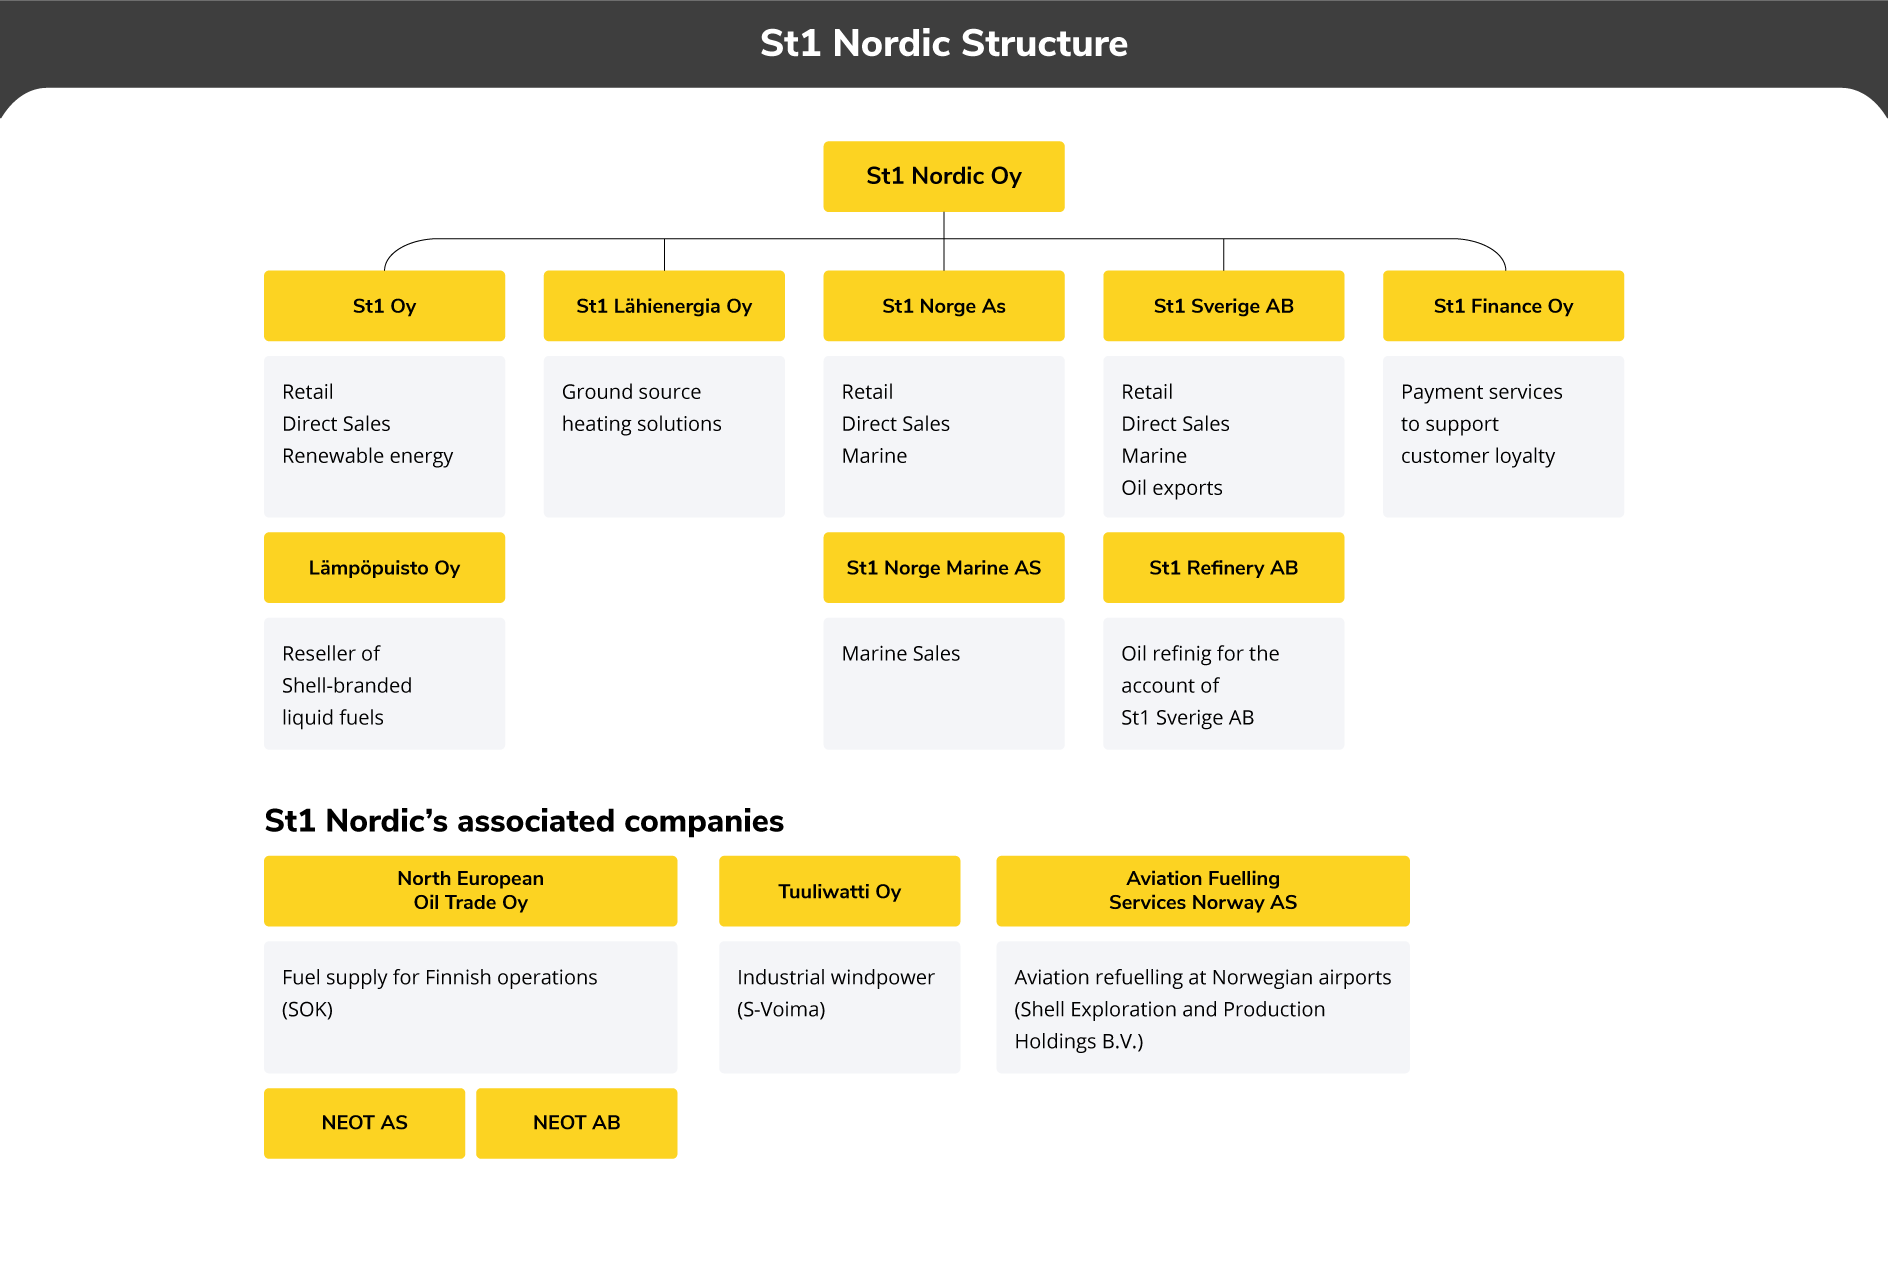 st1-nordic-structure-2019